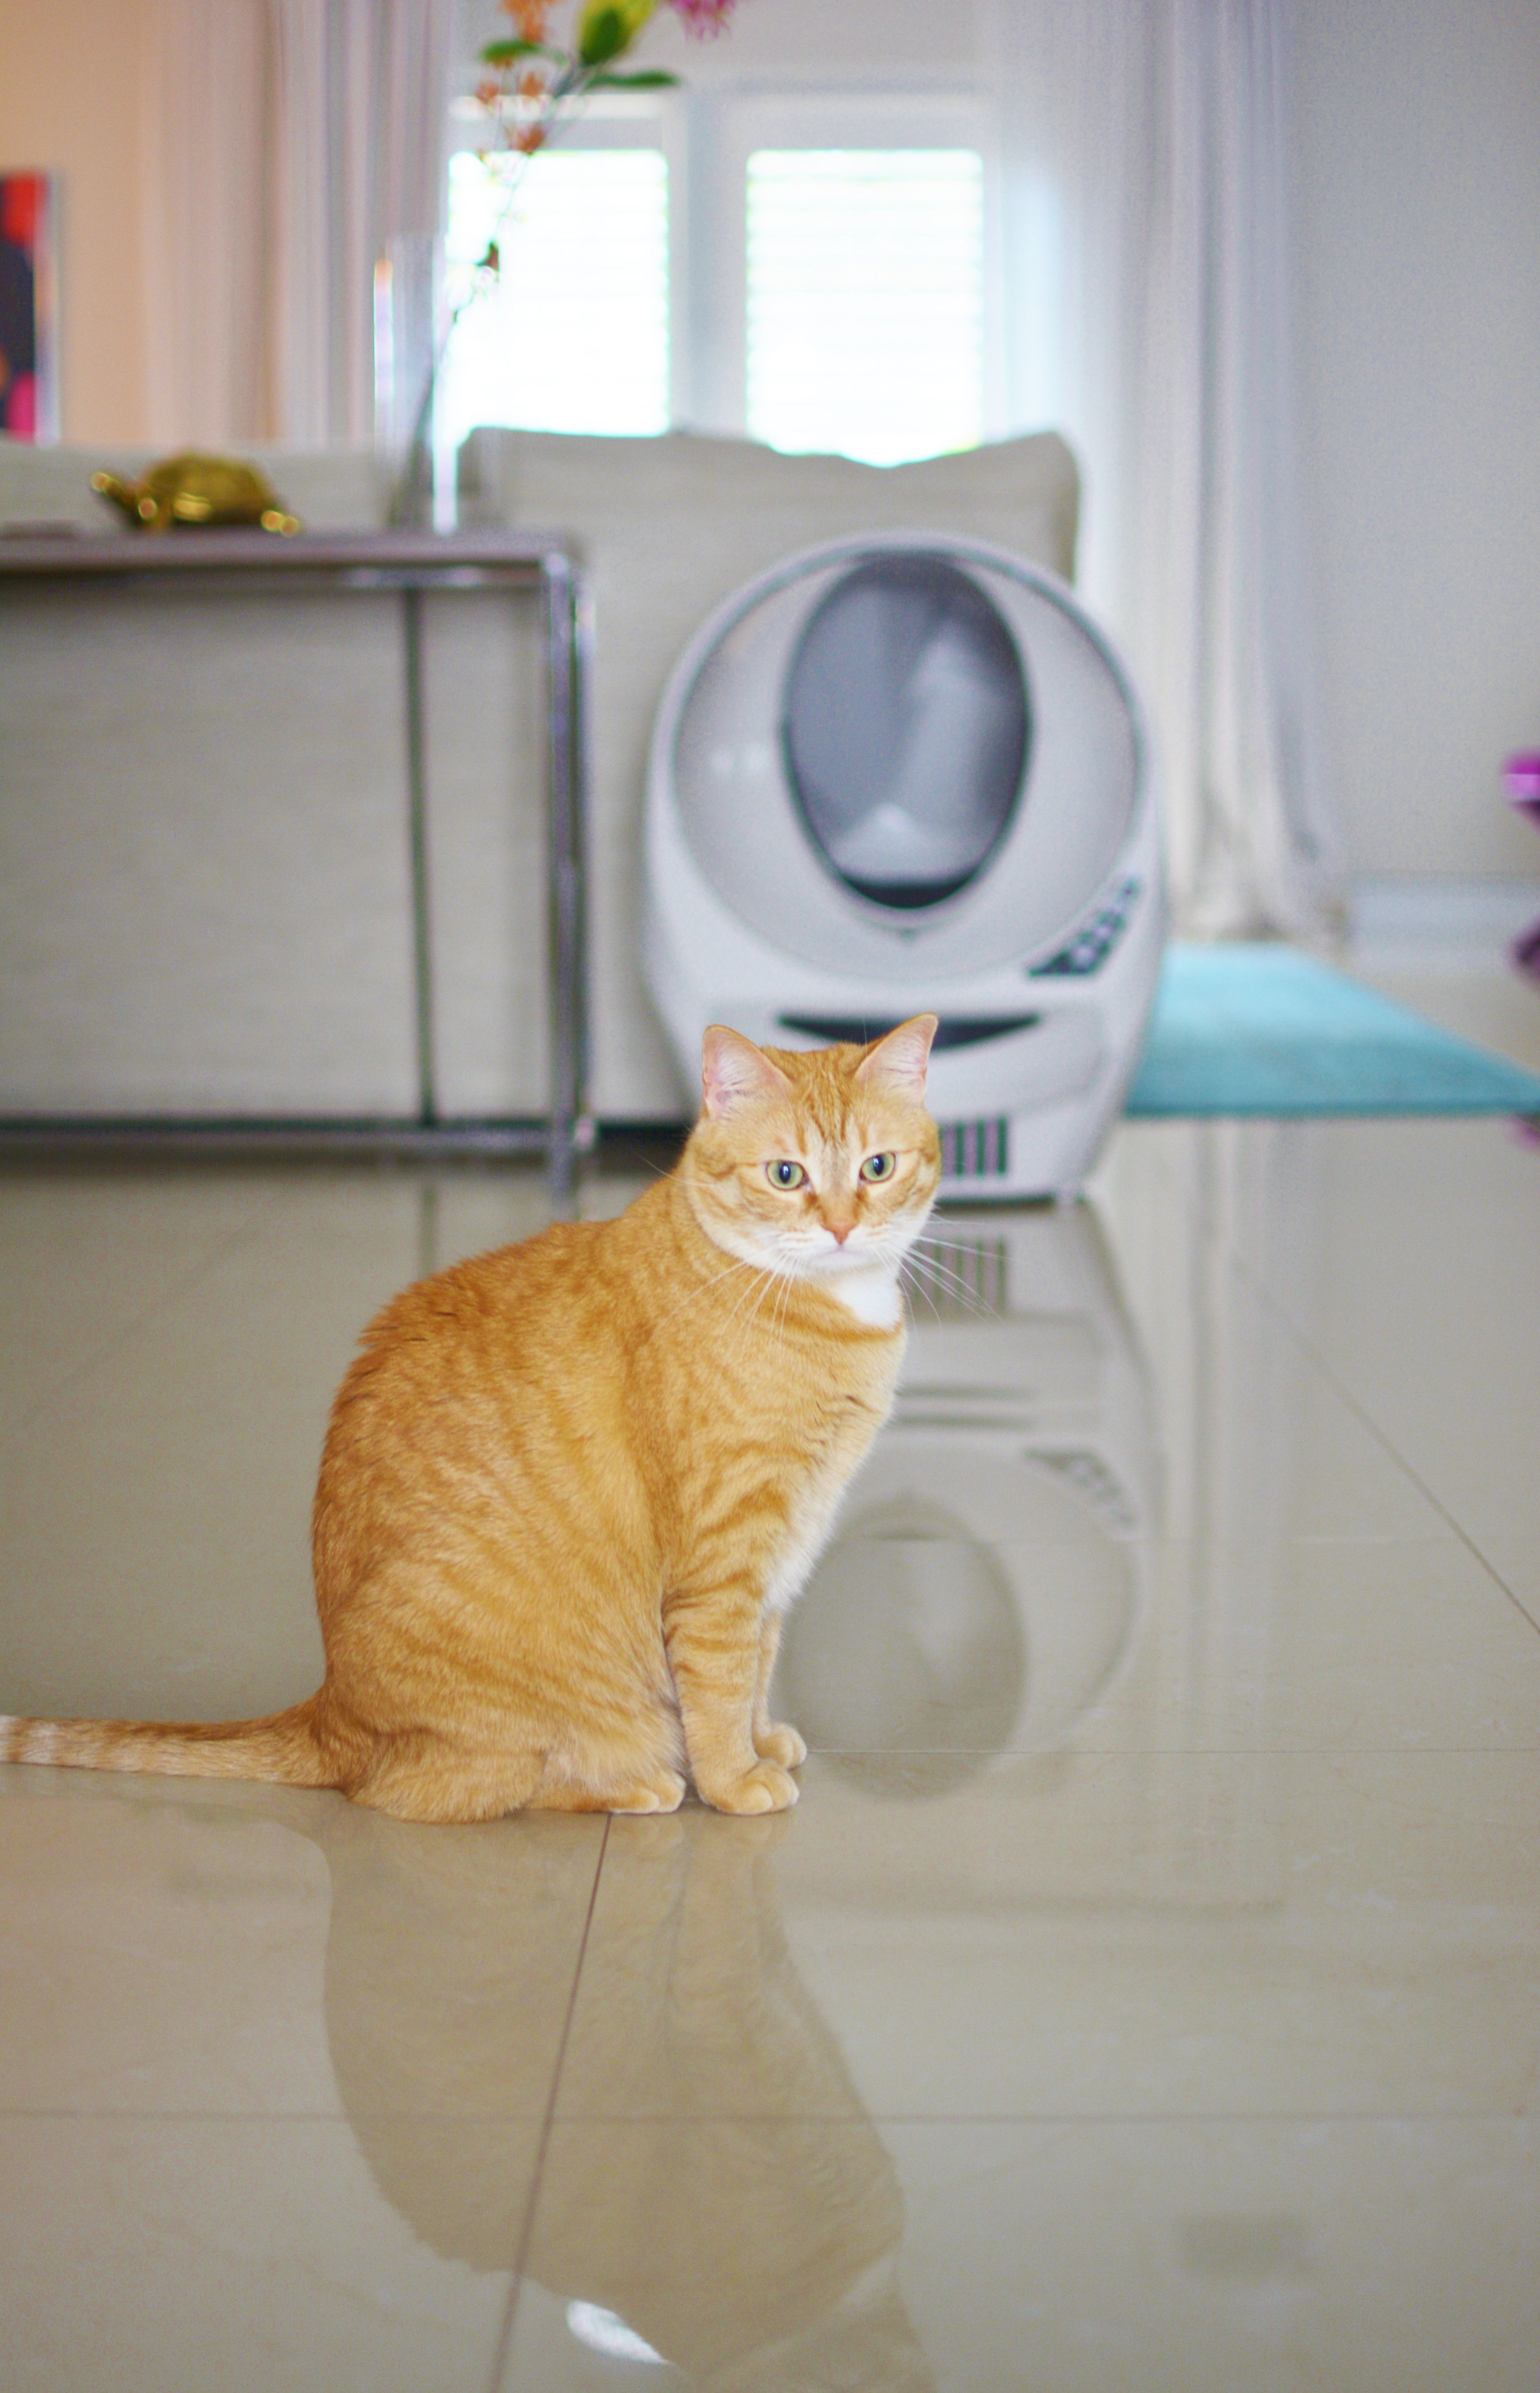 Stop scooping cat litter! With features like the automatic